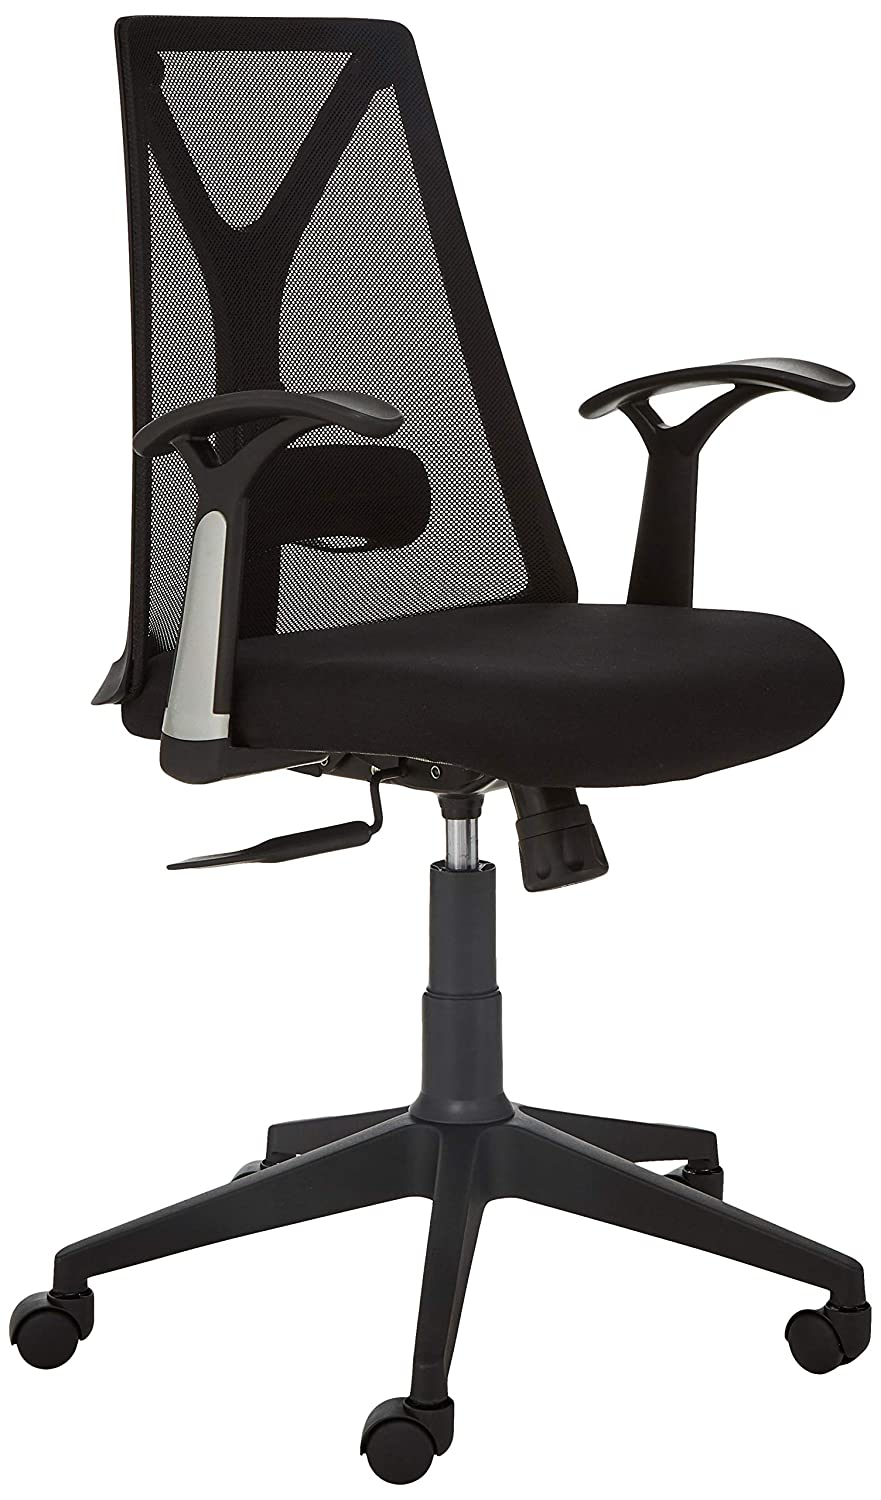 [Apply coupon] Amazon Brand - Solimo Zurich Mid Back Mesh Office Chair